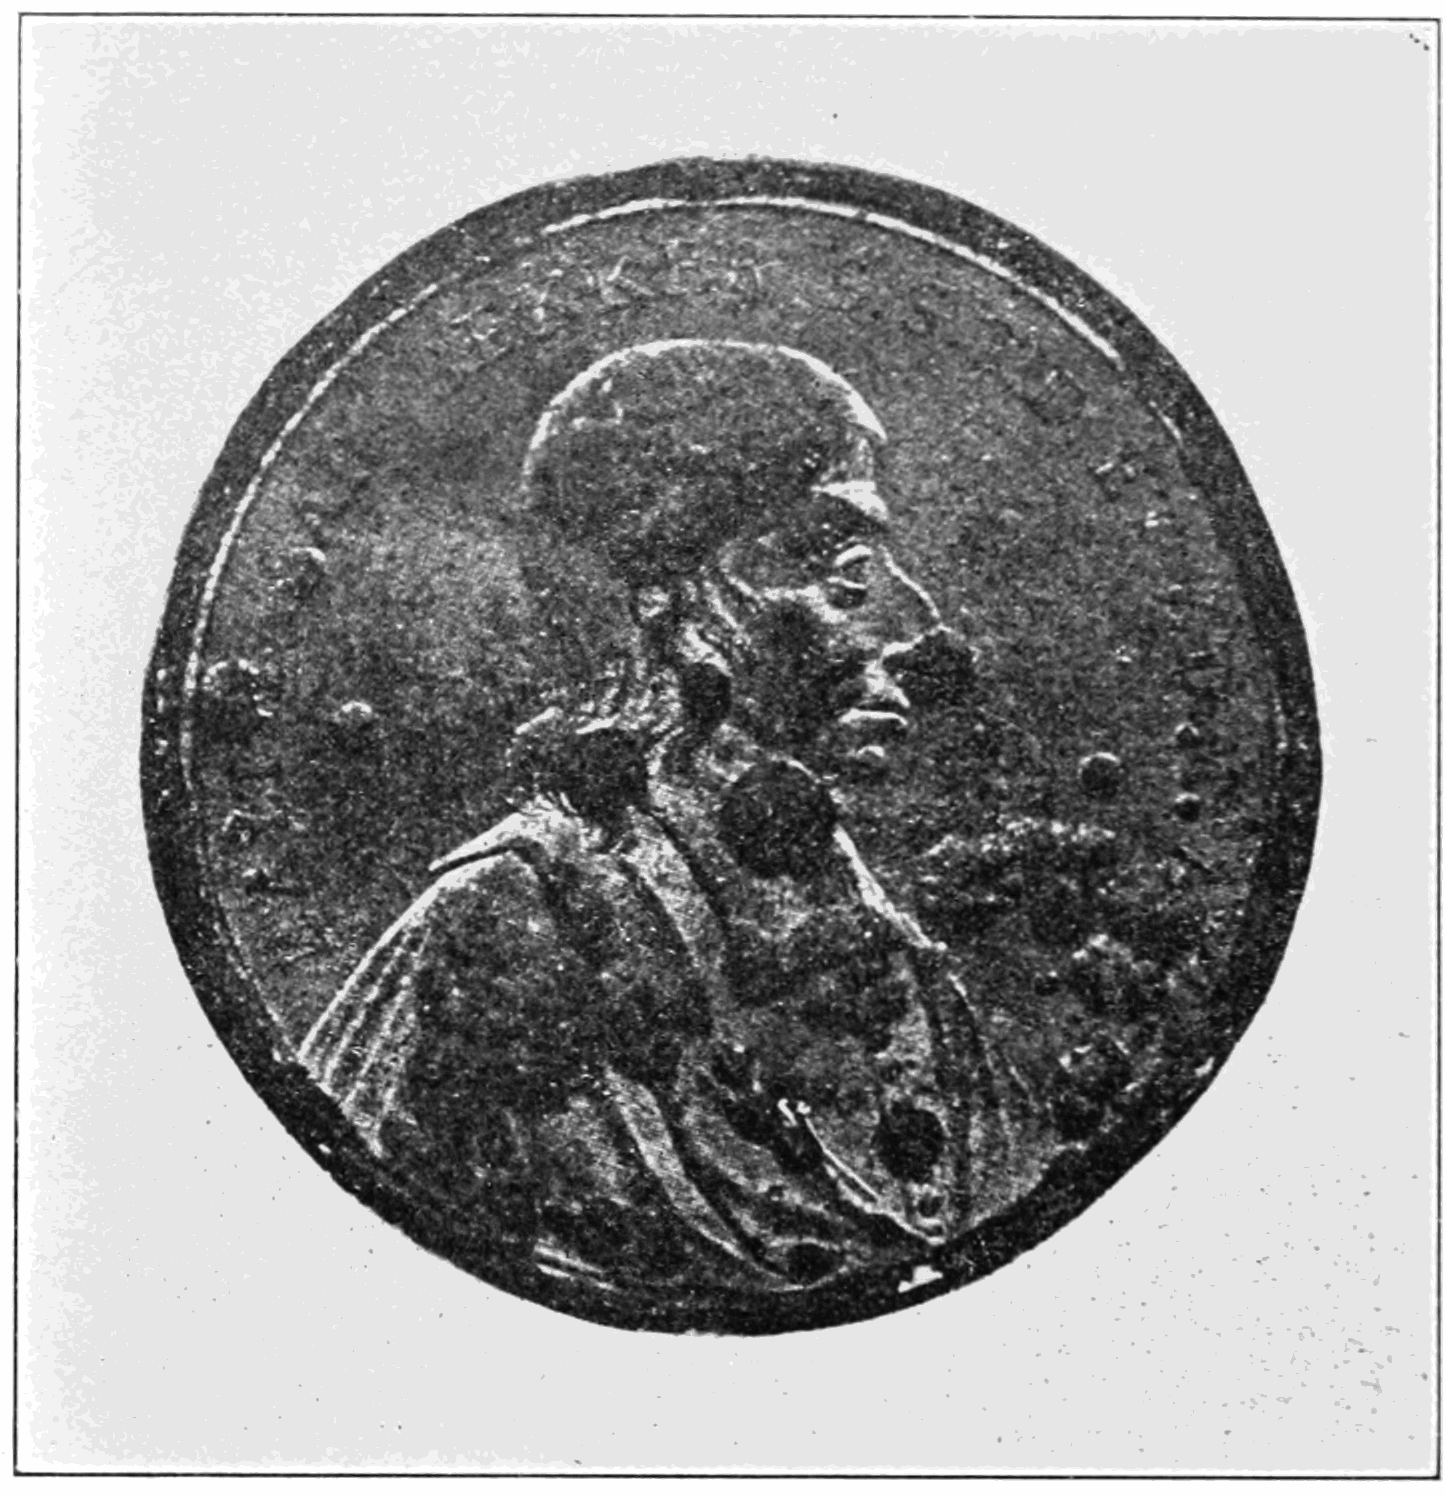 PSM V83 D034 Two hundred year old medal affected by tin disease.png